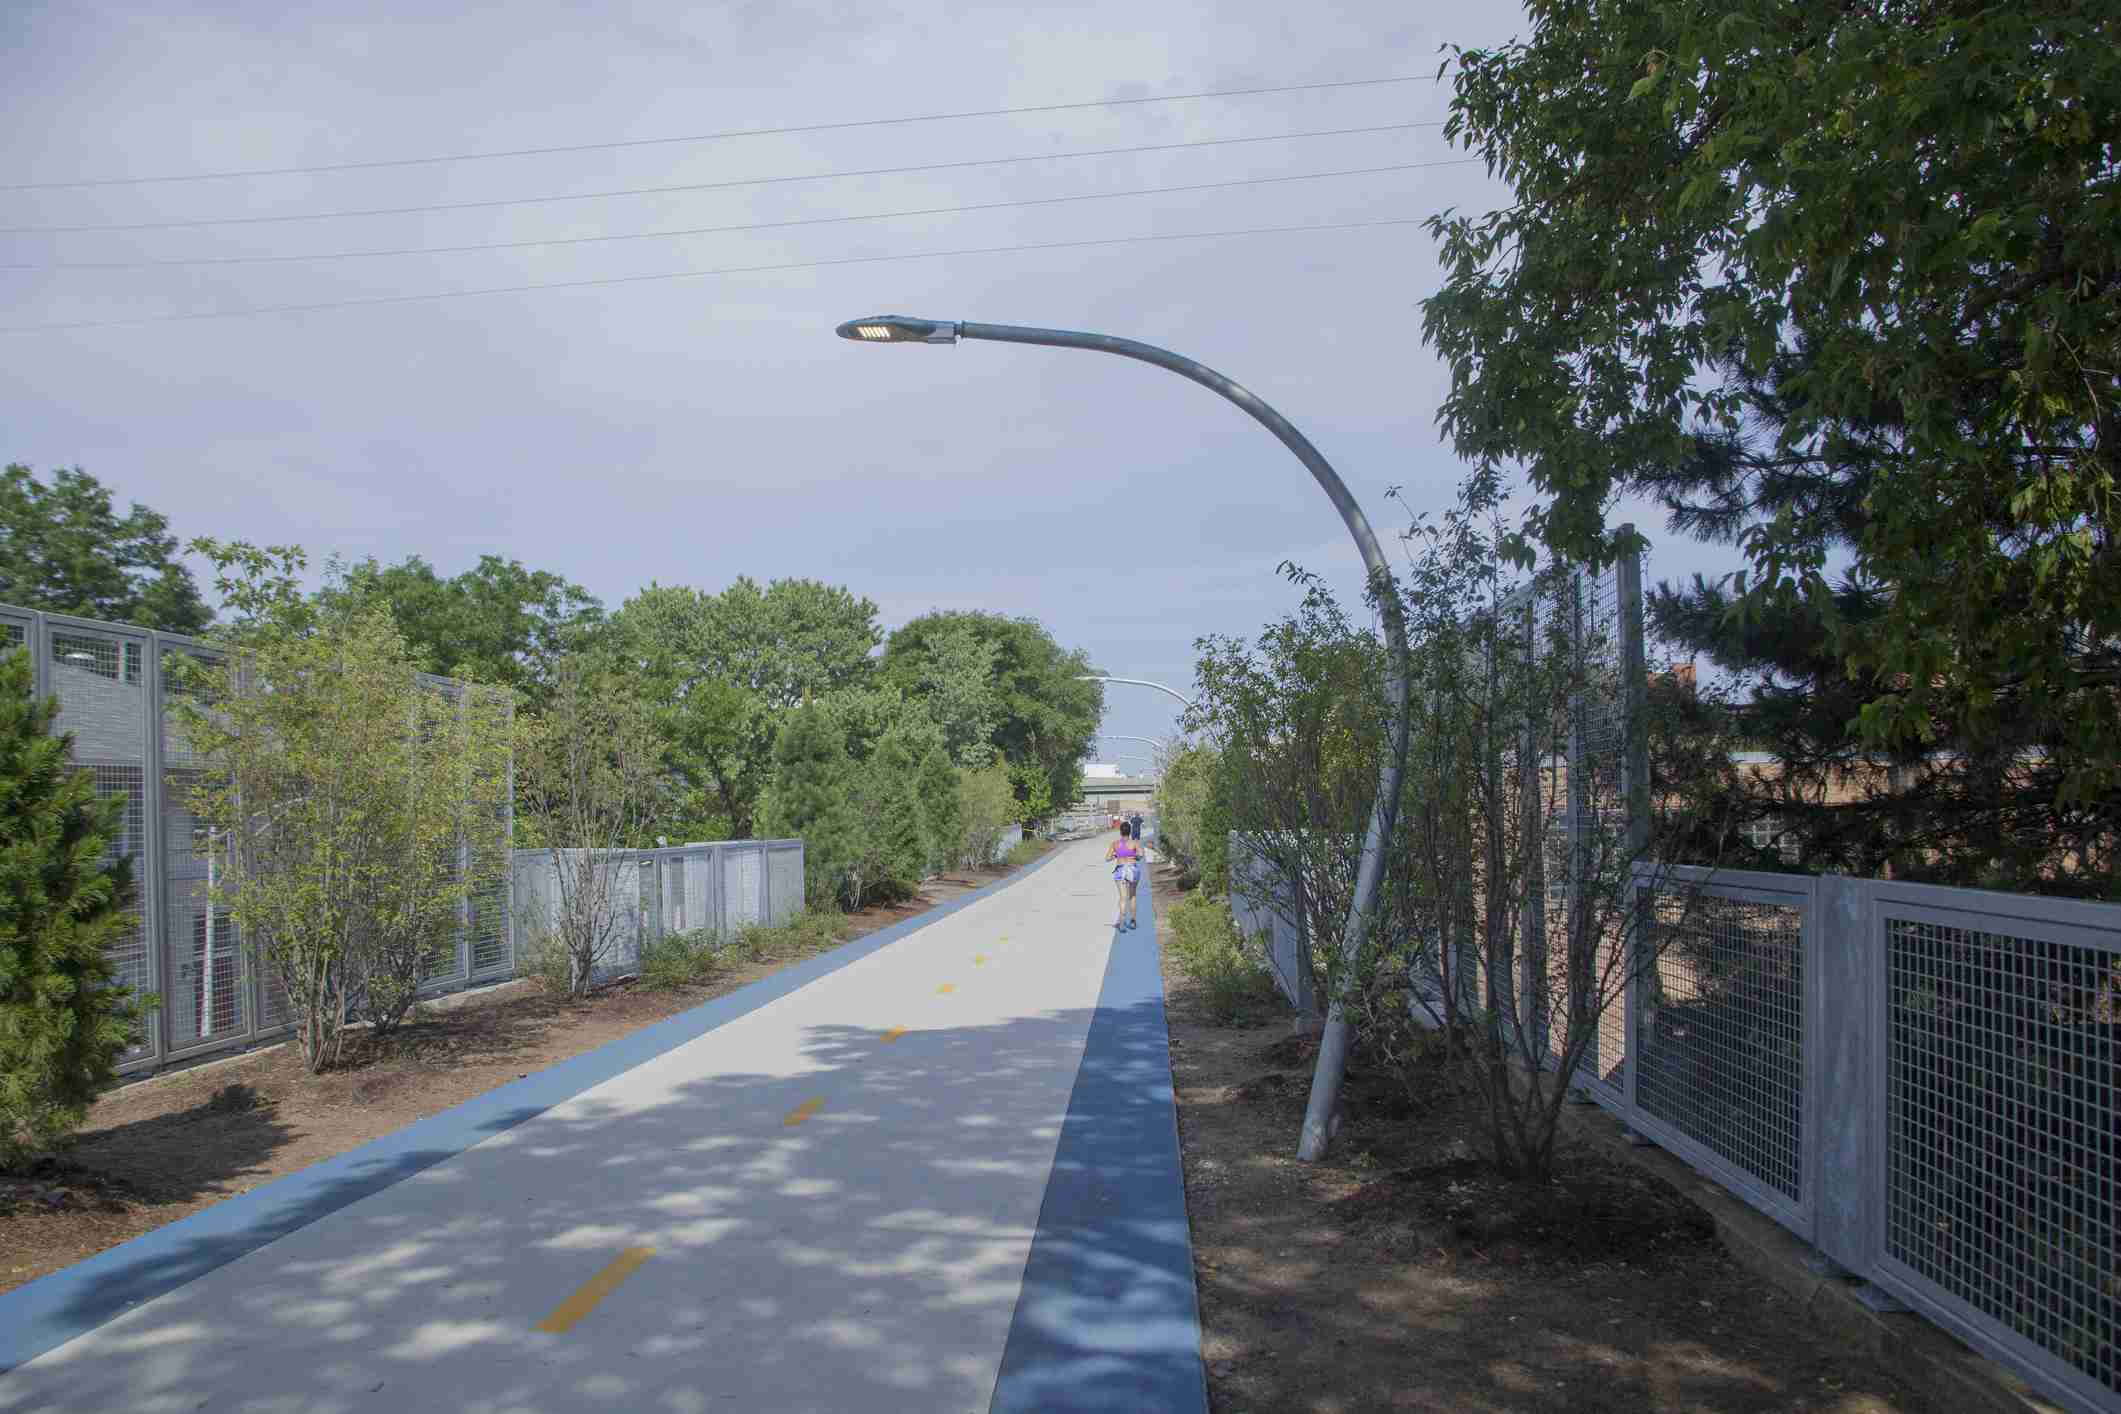 bloomingdale trail, Chicago, IL